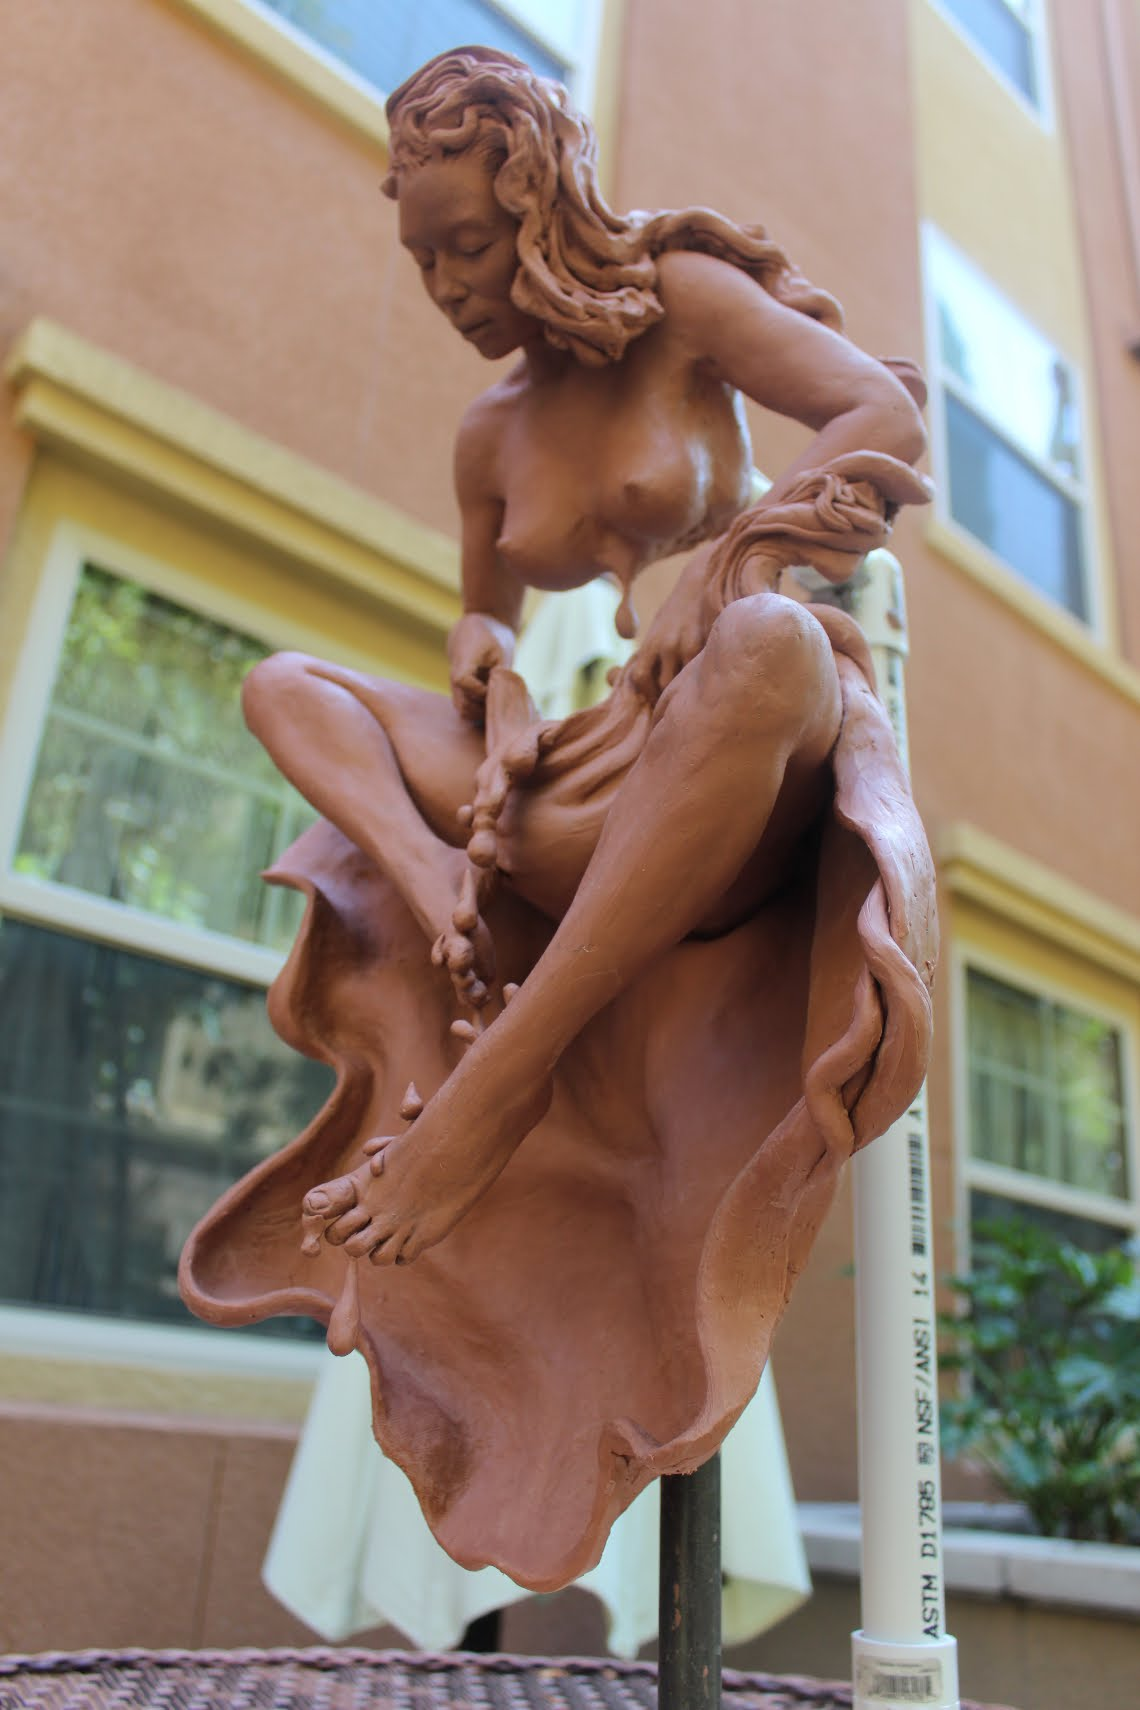 Figurative sculpture at an angle by Suzanne Head